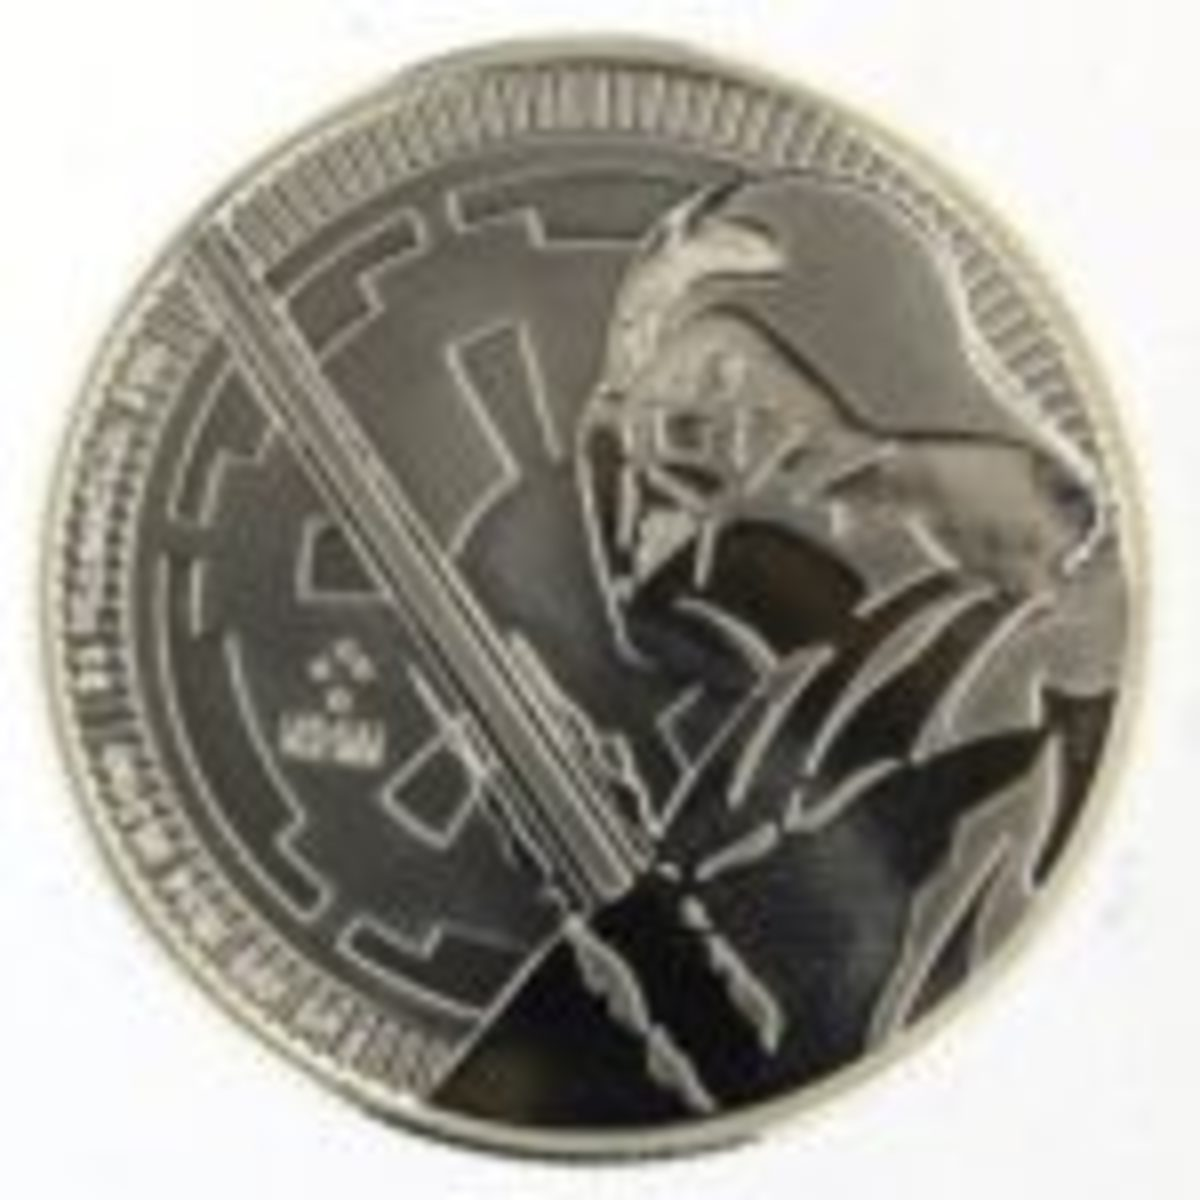 This .999 fine silver coin comes from New Zealand and is an officially licensed Star Wars bullion.